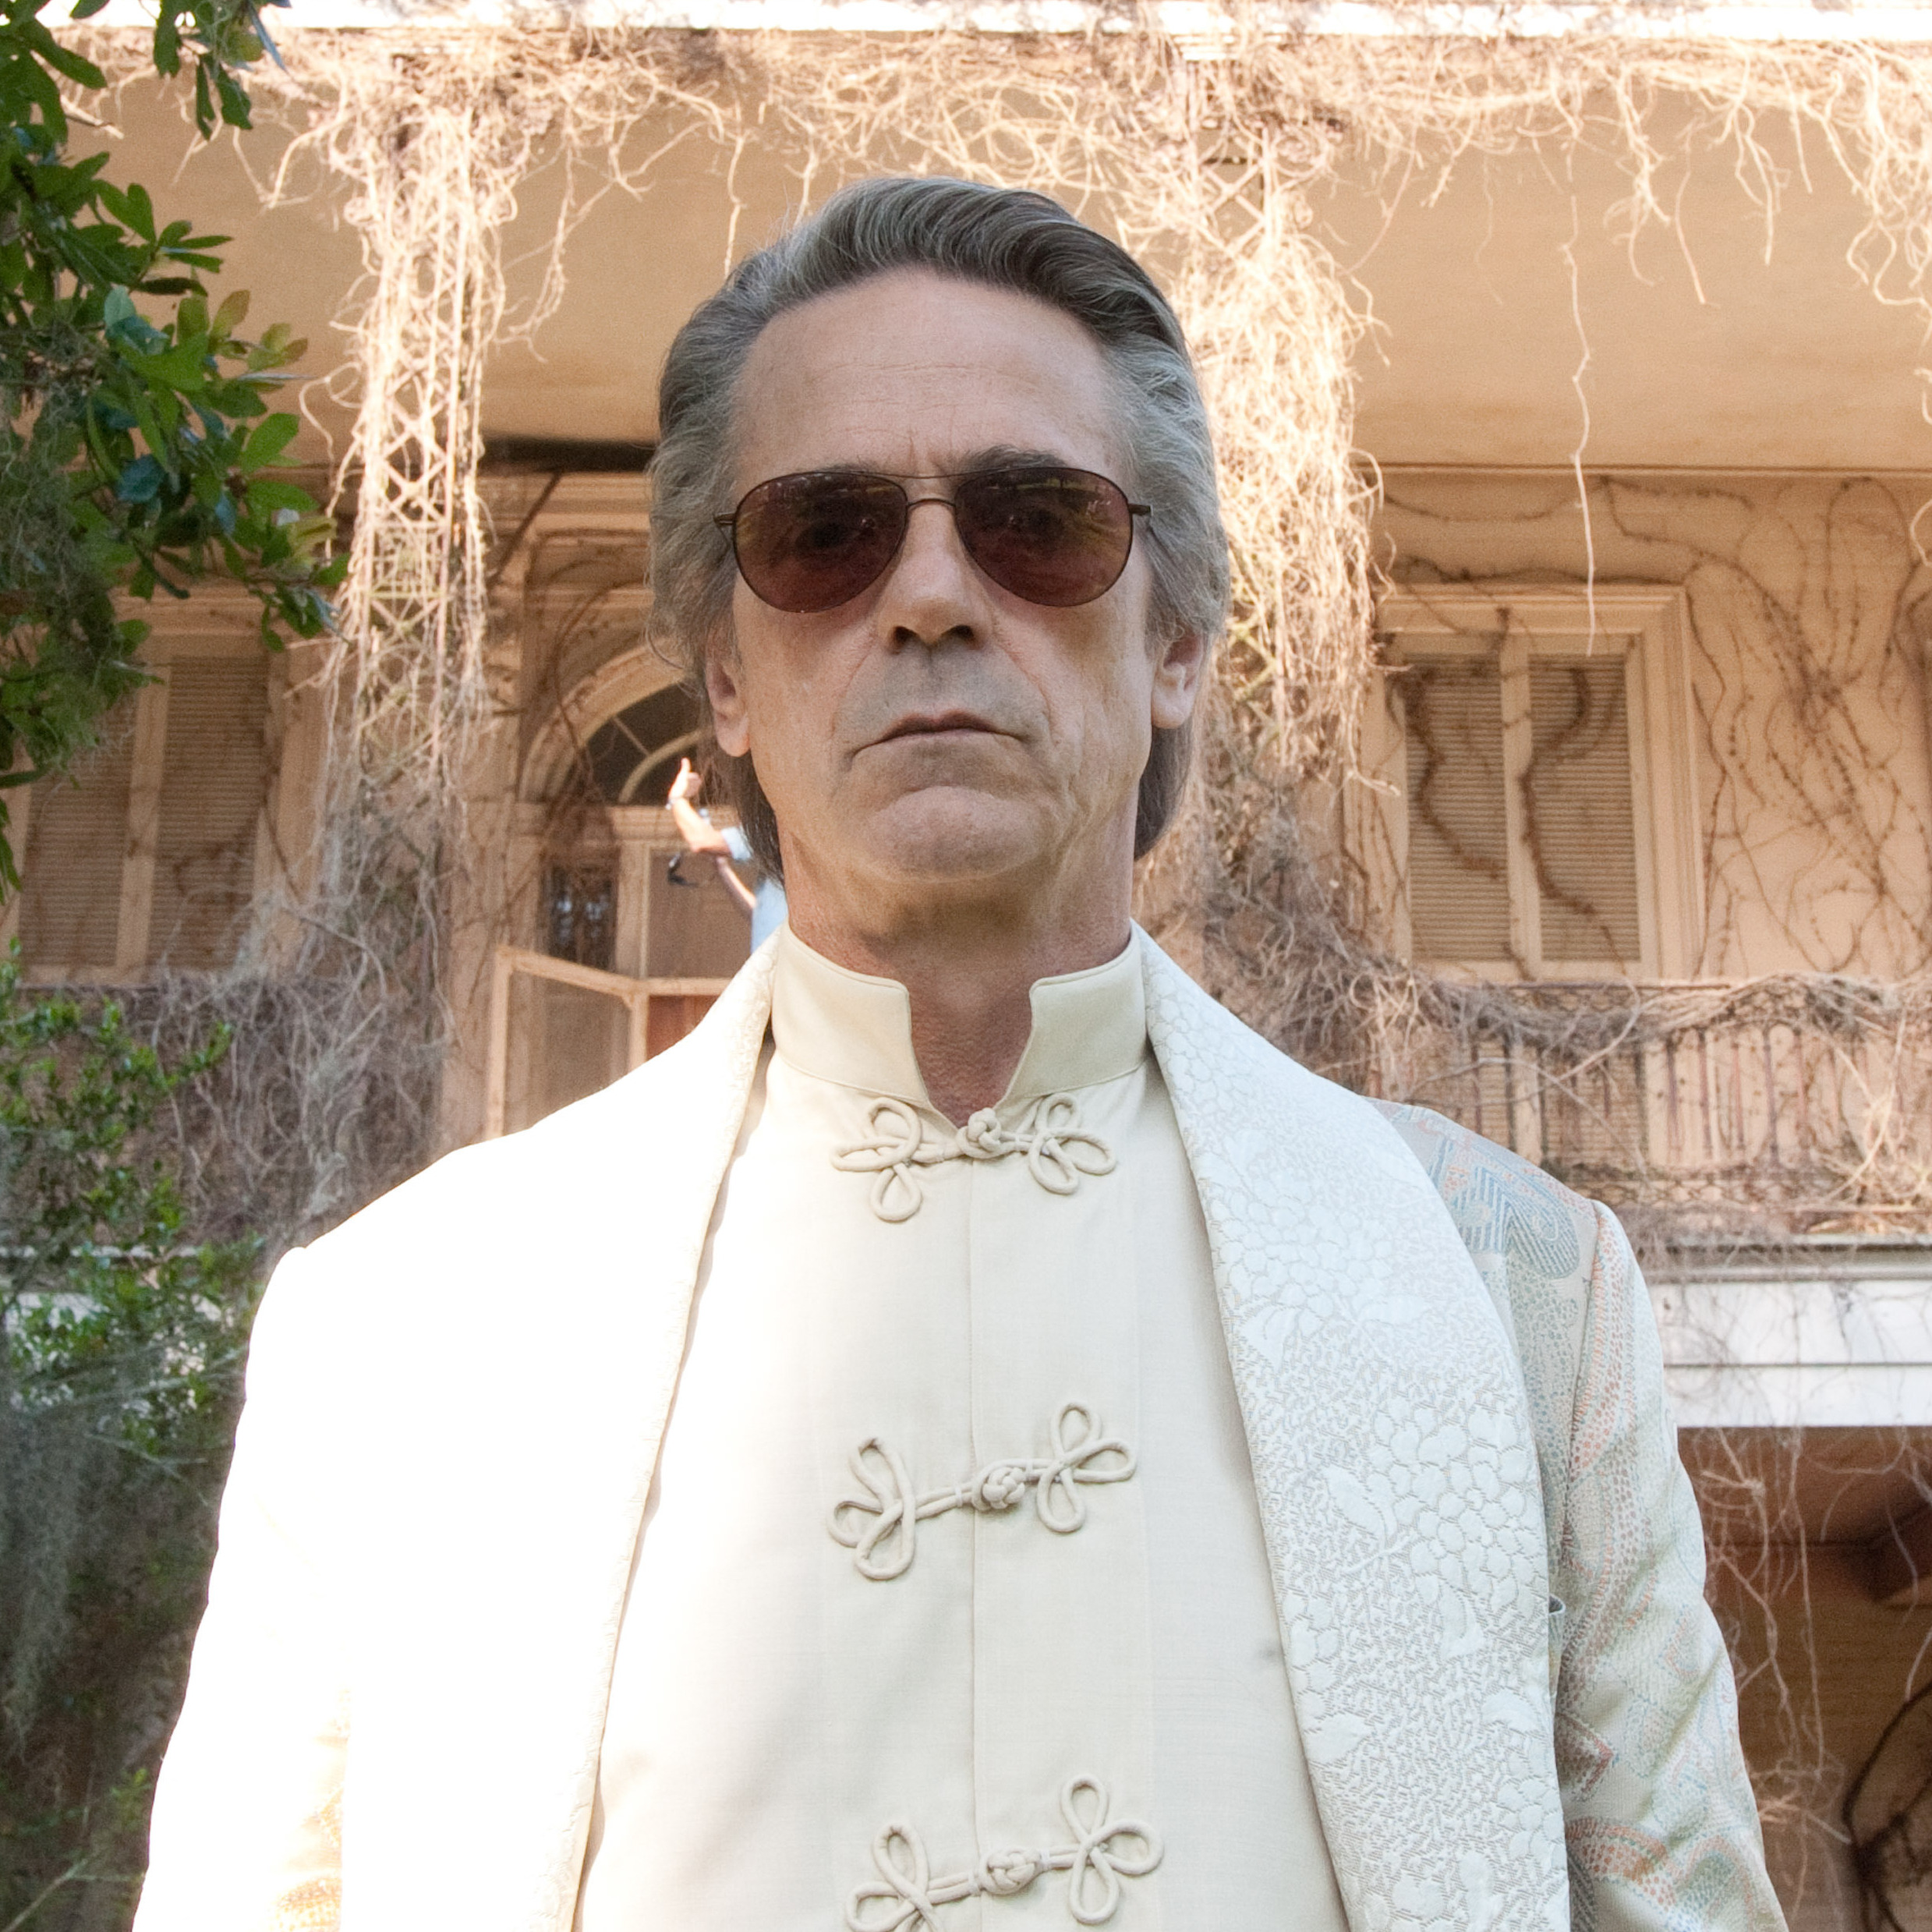 Jeremy Irons has fun with a Southern accent as patriarch Macon Ravenwood in Beautiful Creatures, even if he seems to be in a different film than the young lovers.